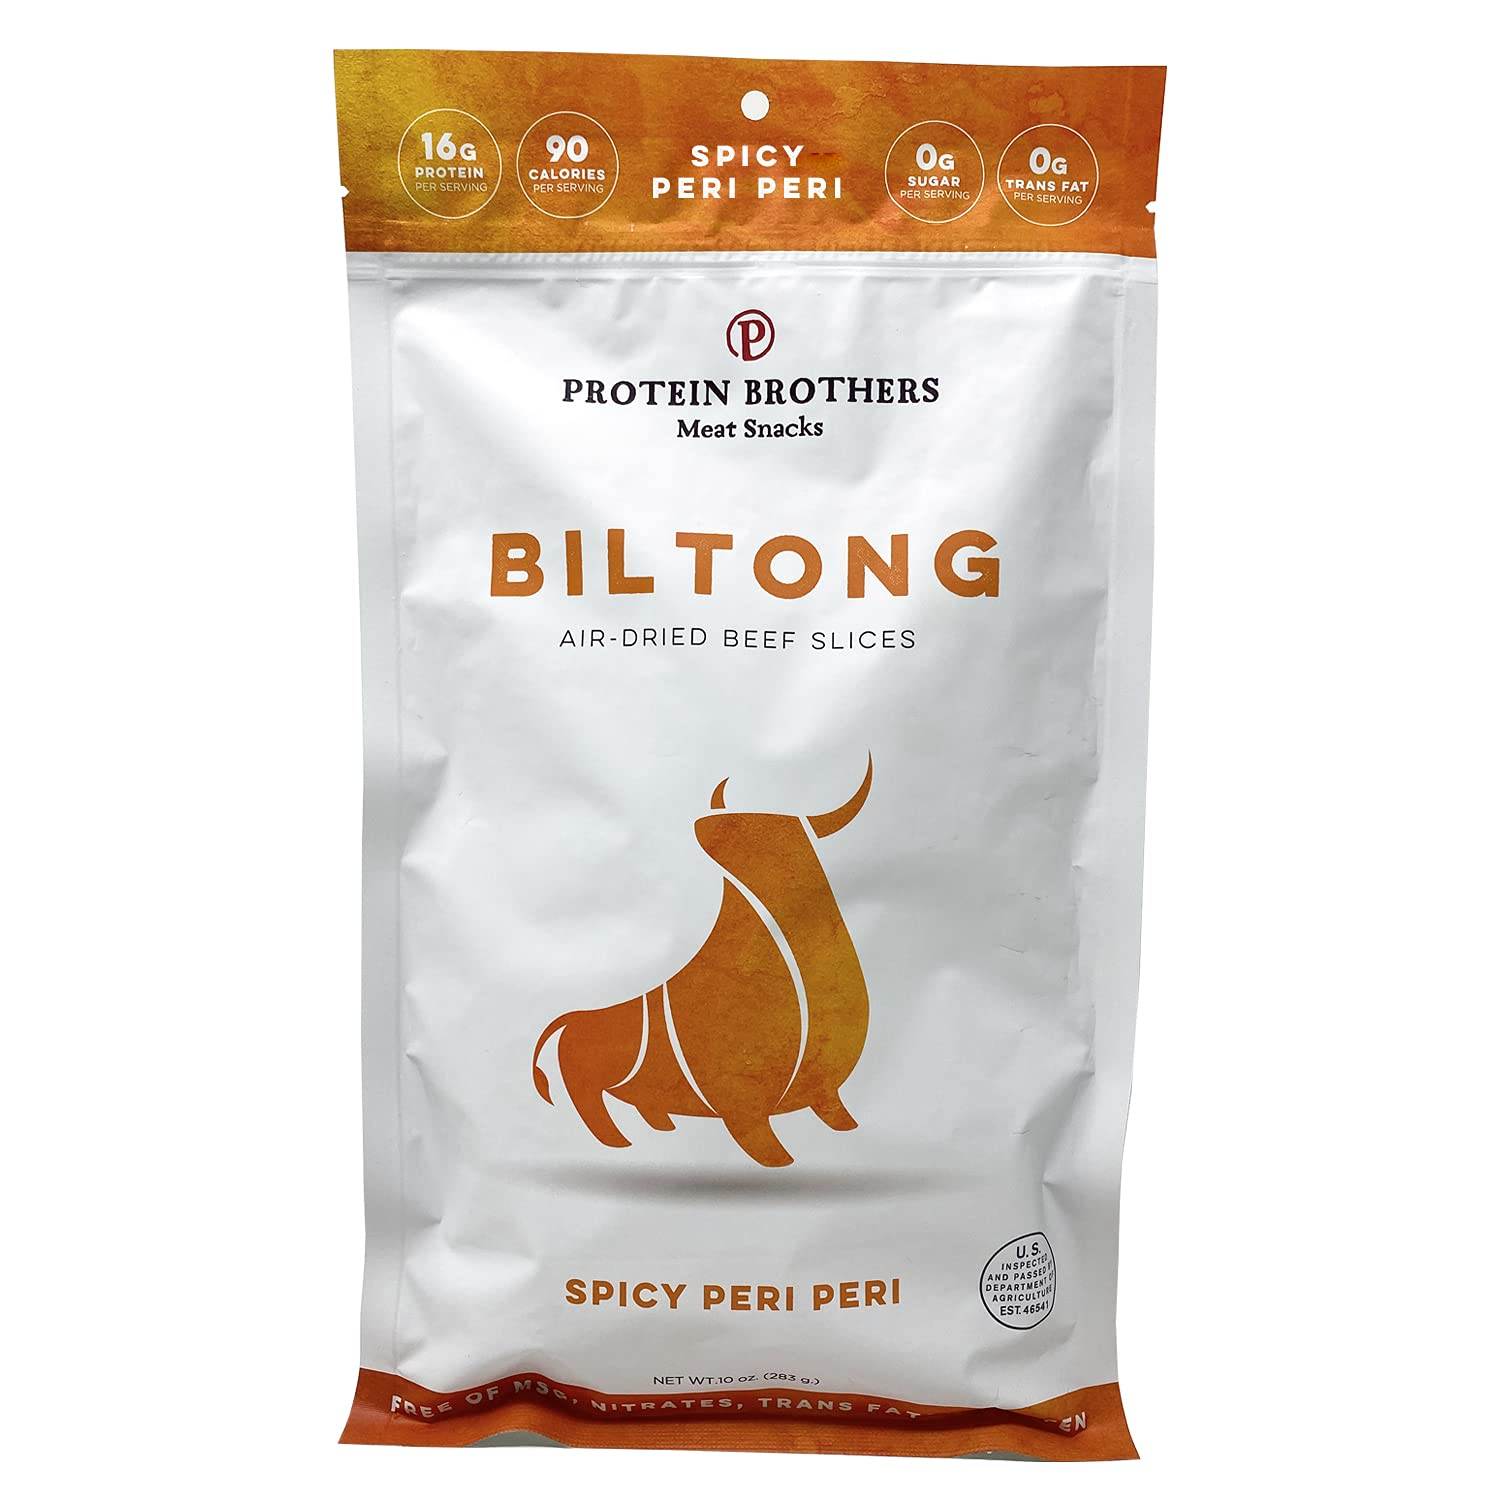 Protein Brothers Biltong Beef Our shop most popular Jerky Max 75% OFF Sugar Low Carb 0g Snack